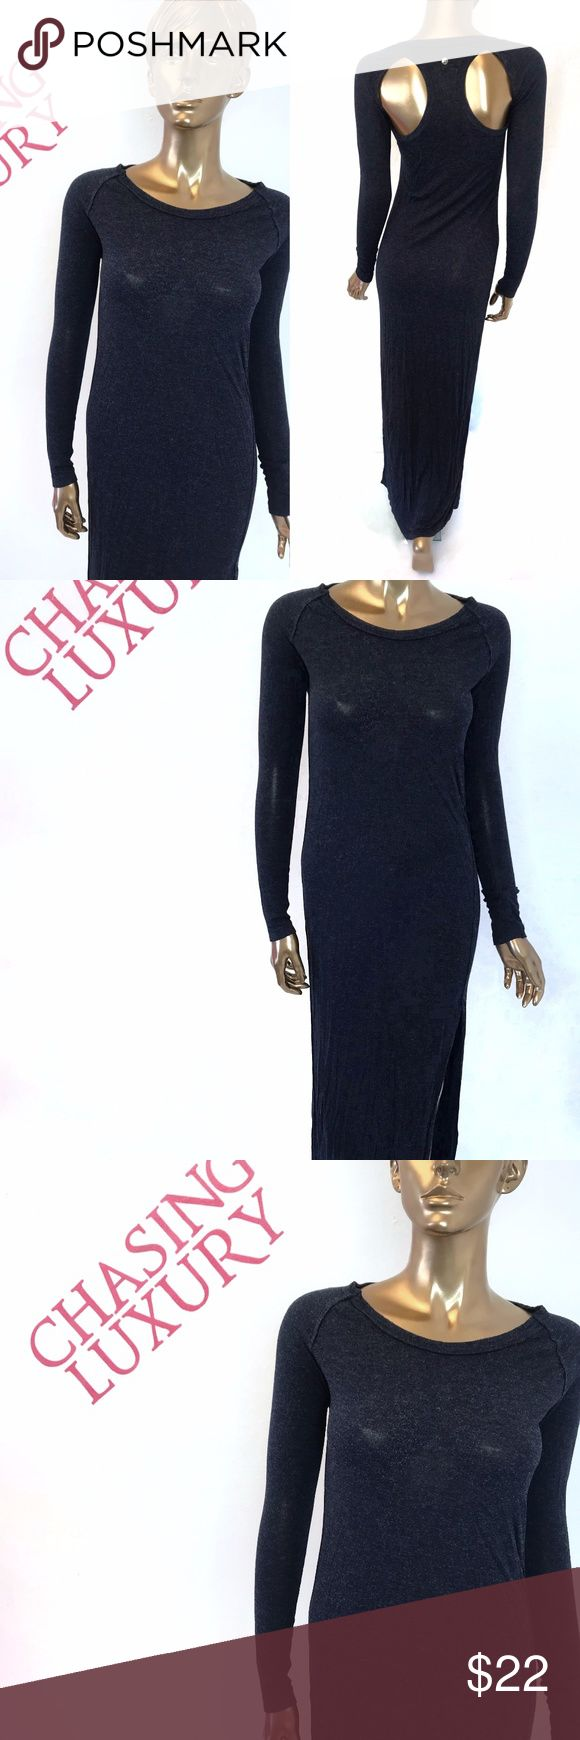 """Diesel Blue High Slit cut out L/S Maxi Dress sz S Brand:  Diesel Size: S $ 178 Color: blue Country/Region Of Manufacture: Bulgaria Measurements:            o       Bust: 35""""            o       Length: floor length             o       Shoulder: cut out            o       Arm:             o       Waist: 29""""            o       Rise:            o       Hips: 39""""  Condition: pre owned good condition Diesel Dresses Maxi"""